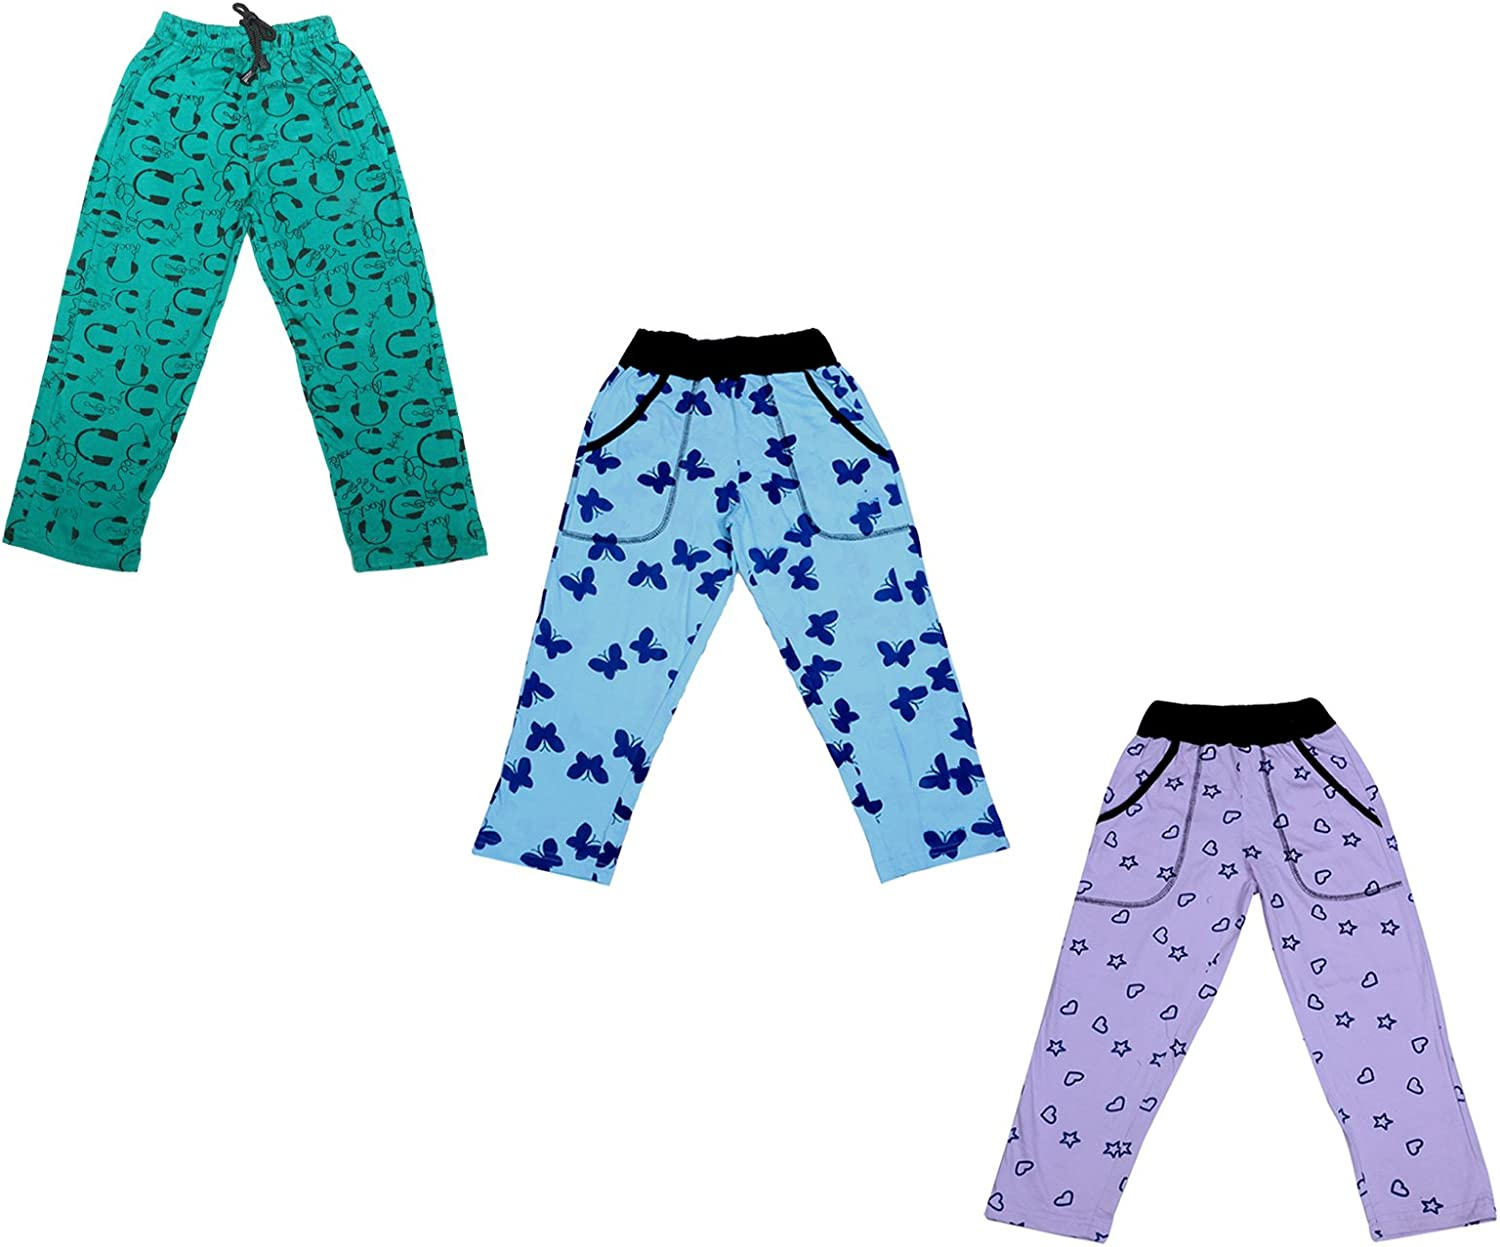 Indistar Girls Premium Cotton Full Length Lower//Track Pants//Pyjamas With 2 Open Pockets Pack Of 2